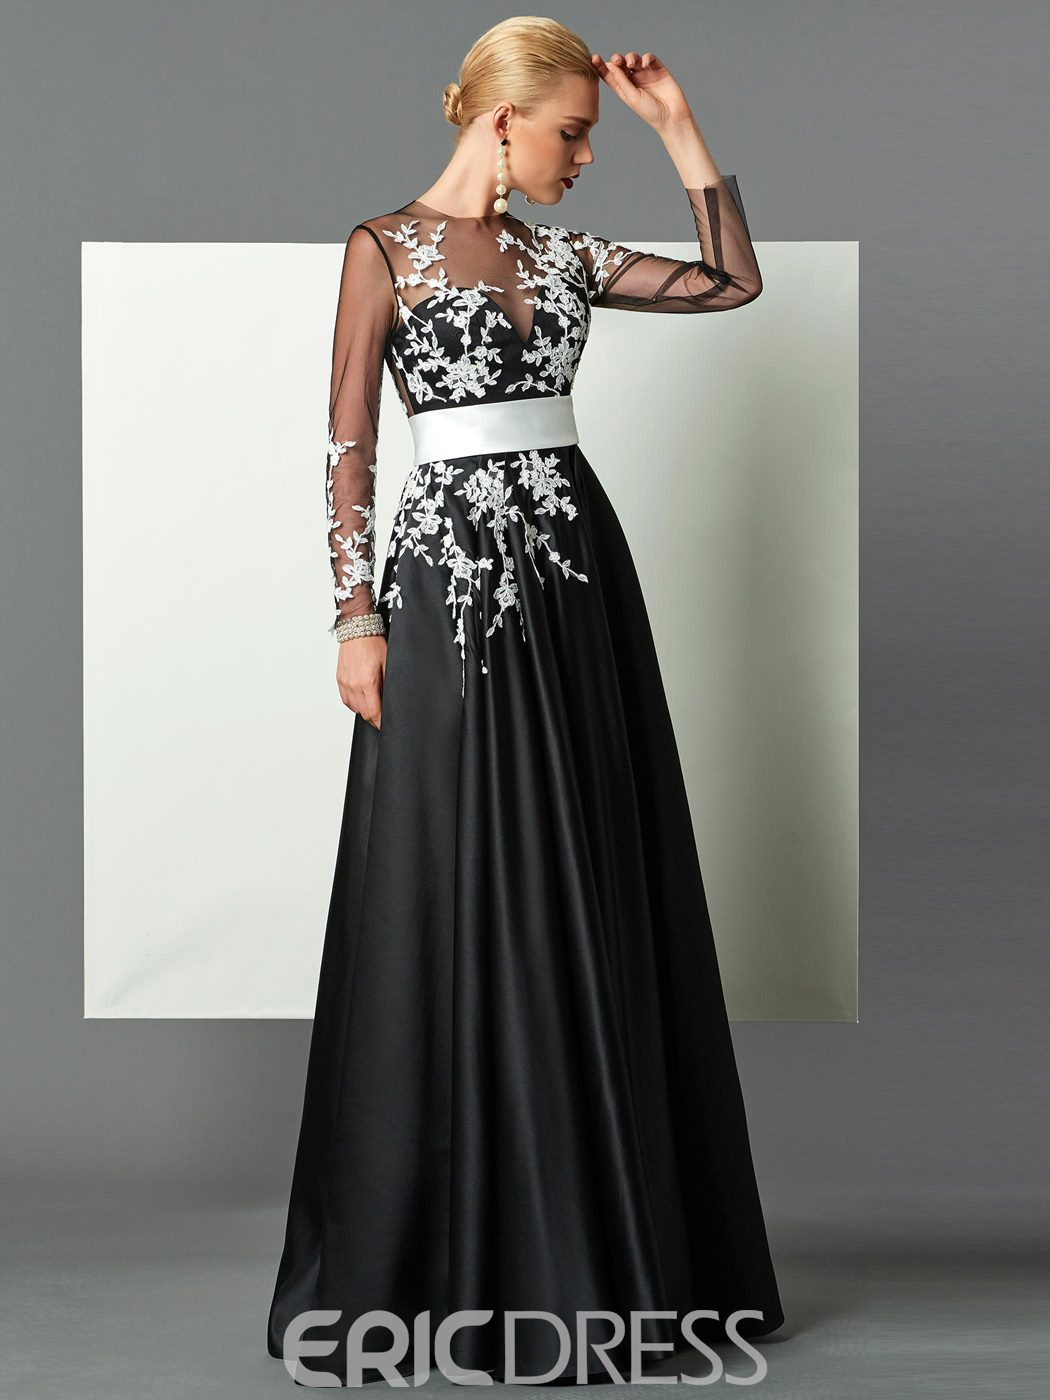 Ericdress Button Long Sleeve Appliques Evening Dress